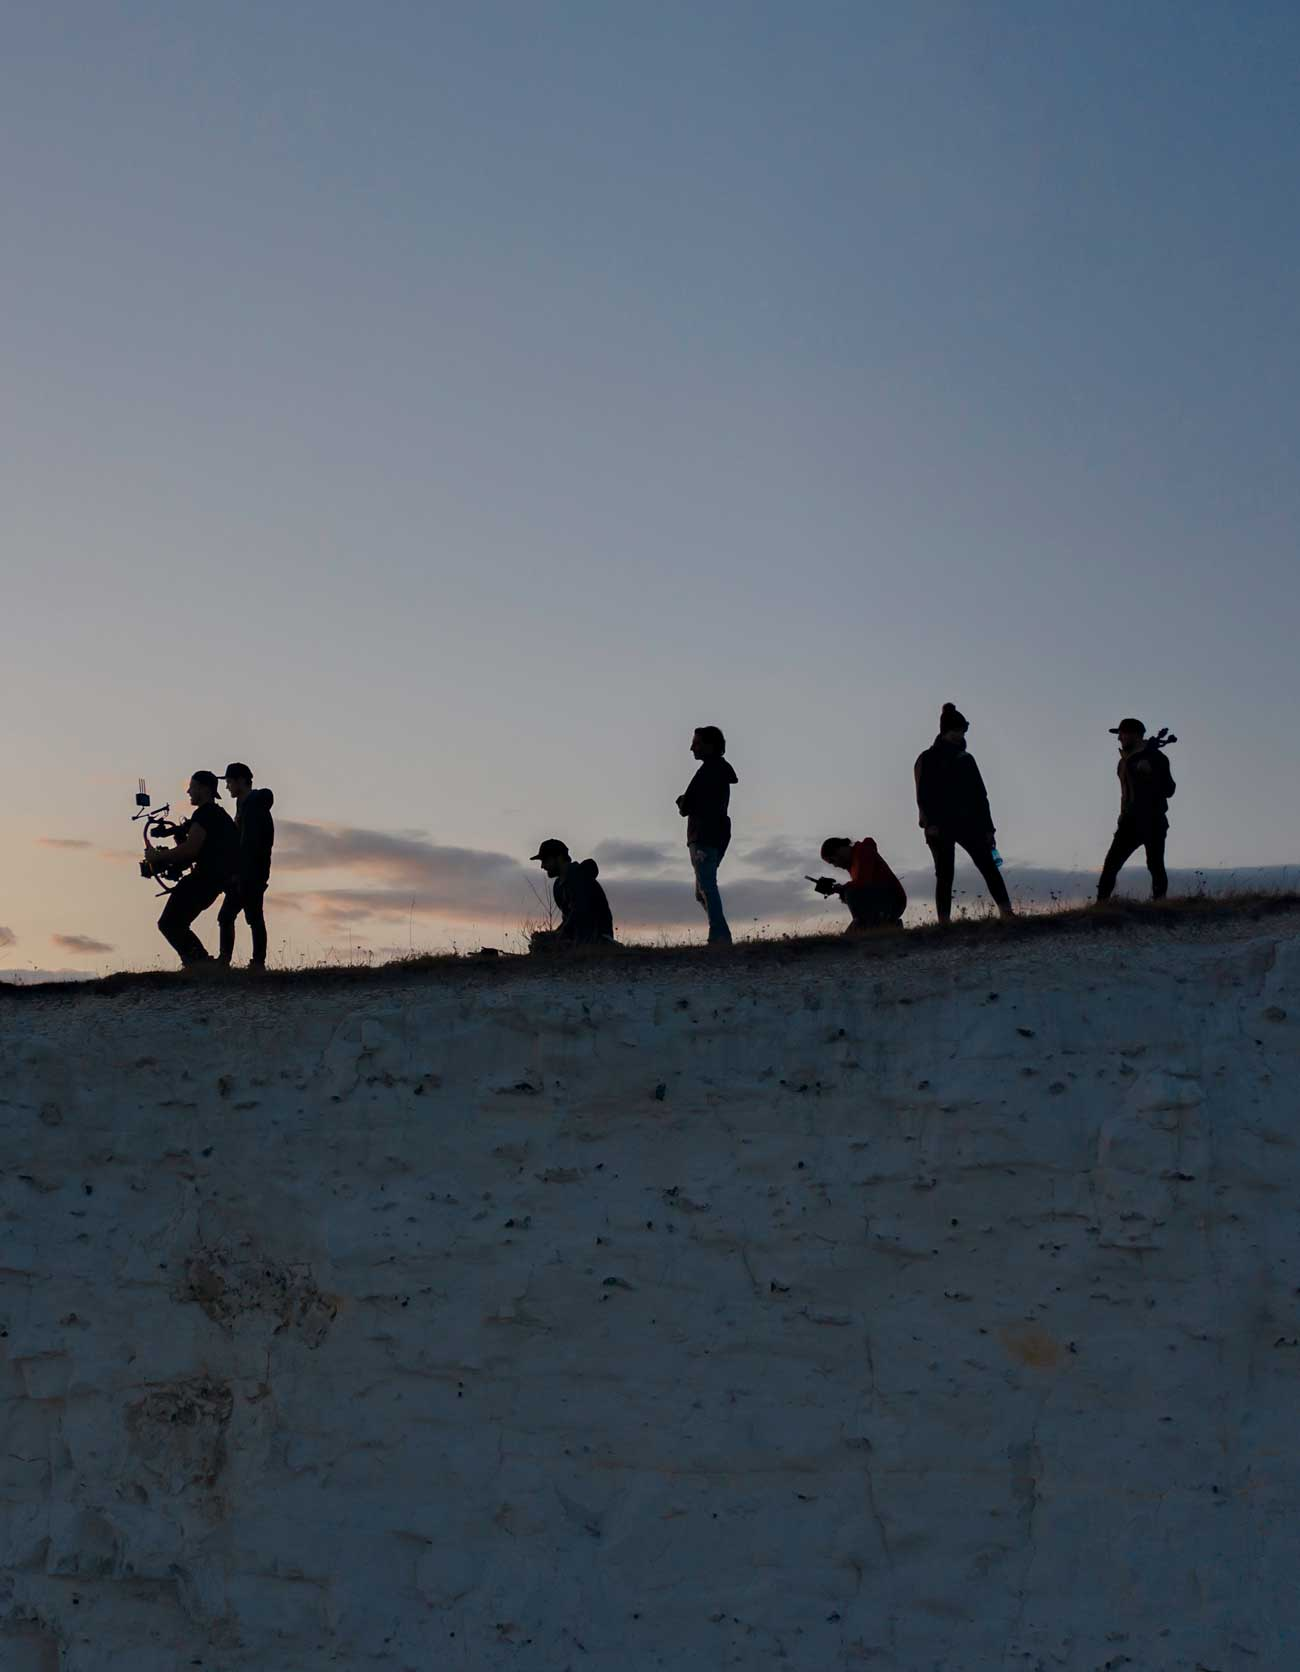 filmcrew silhouettes on a cliff edge drone photo